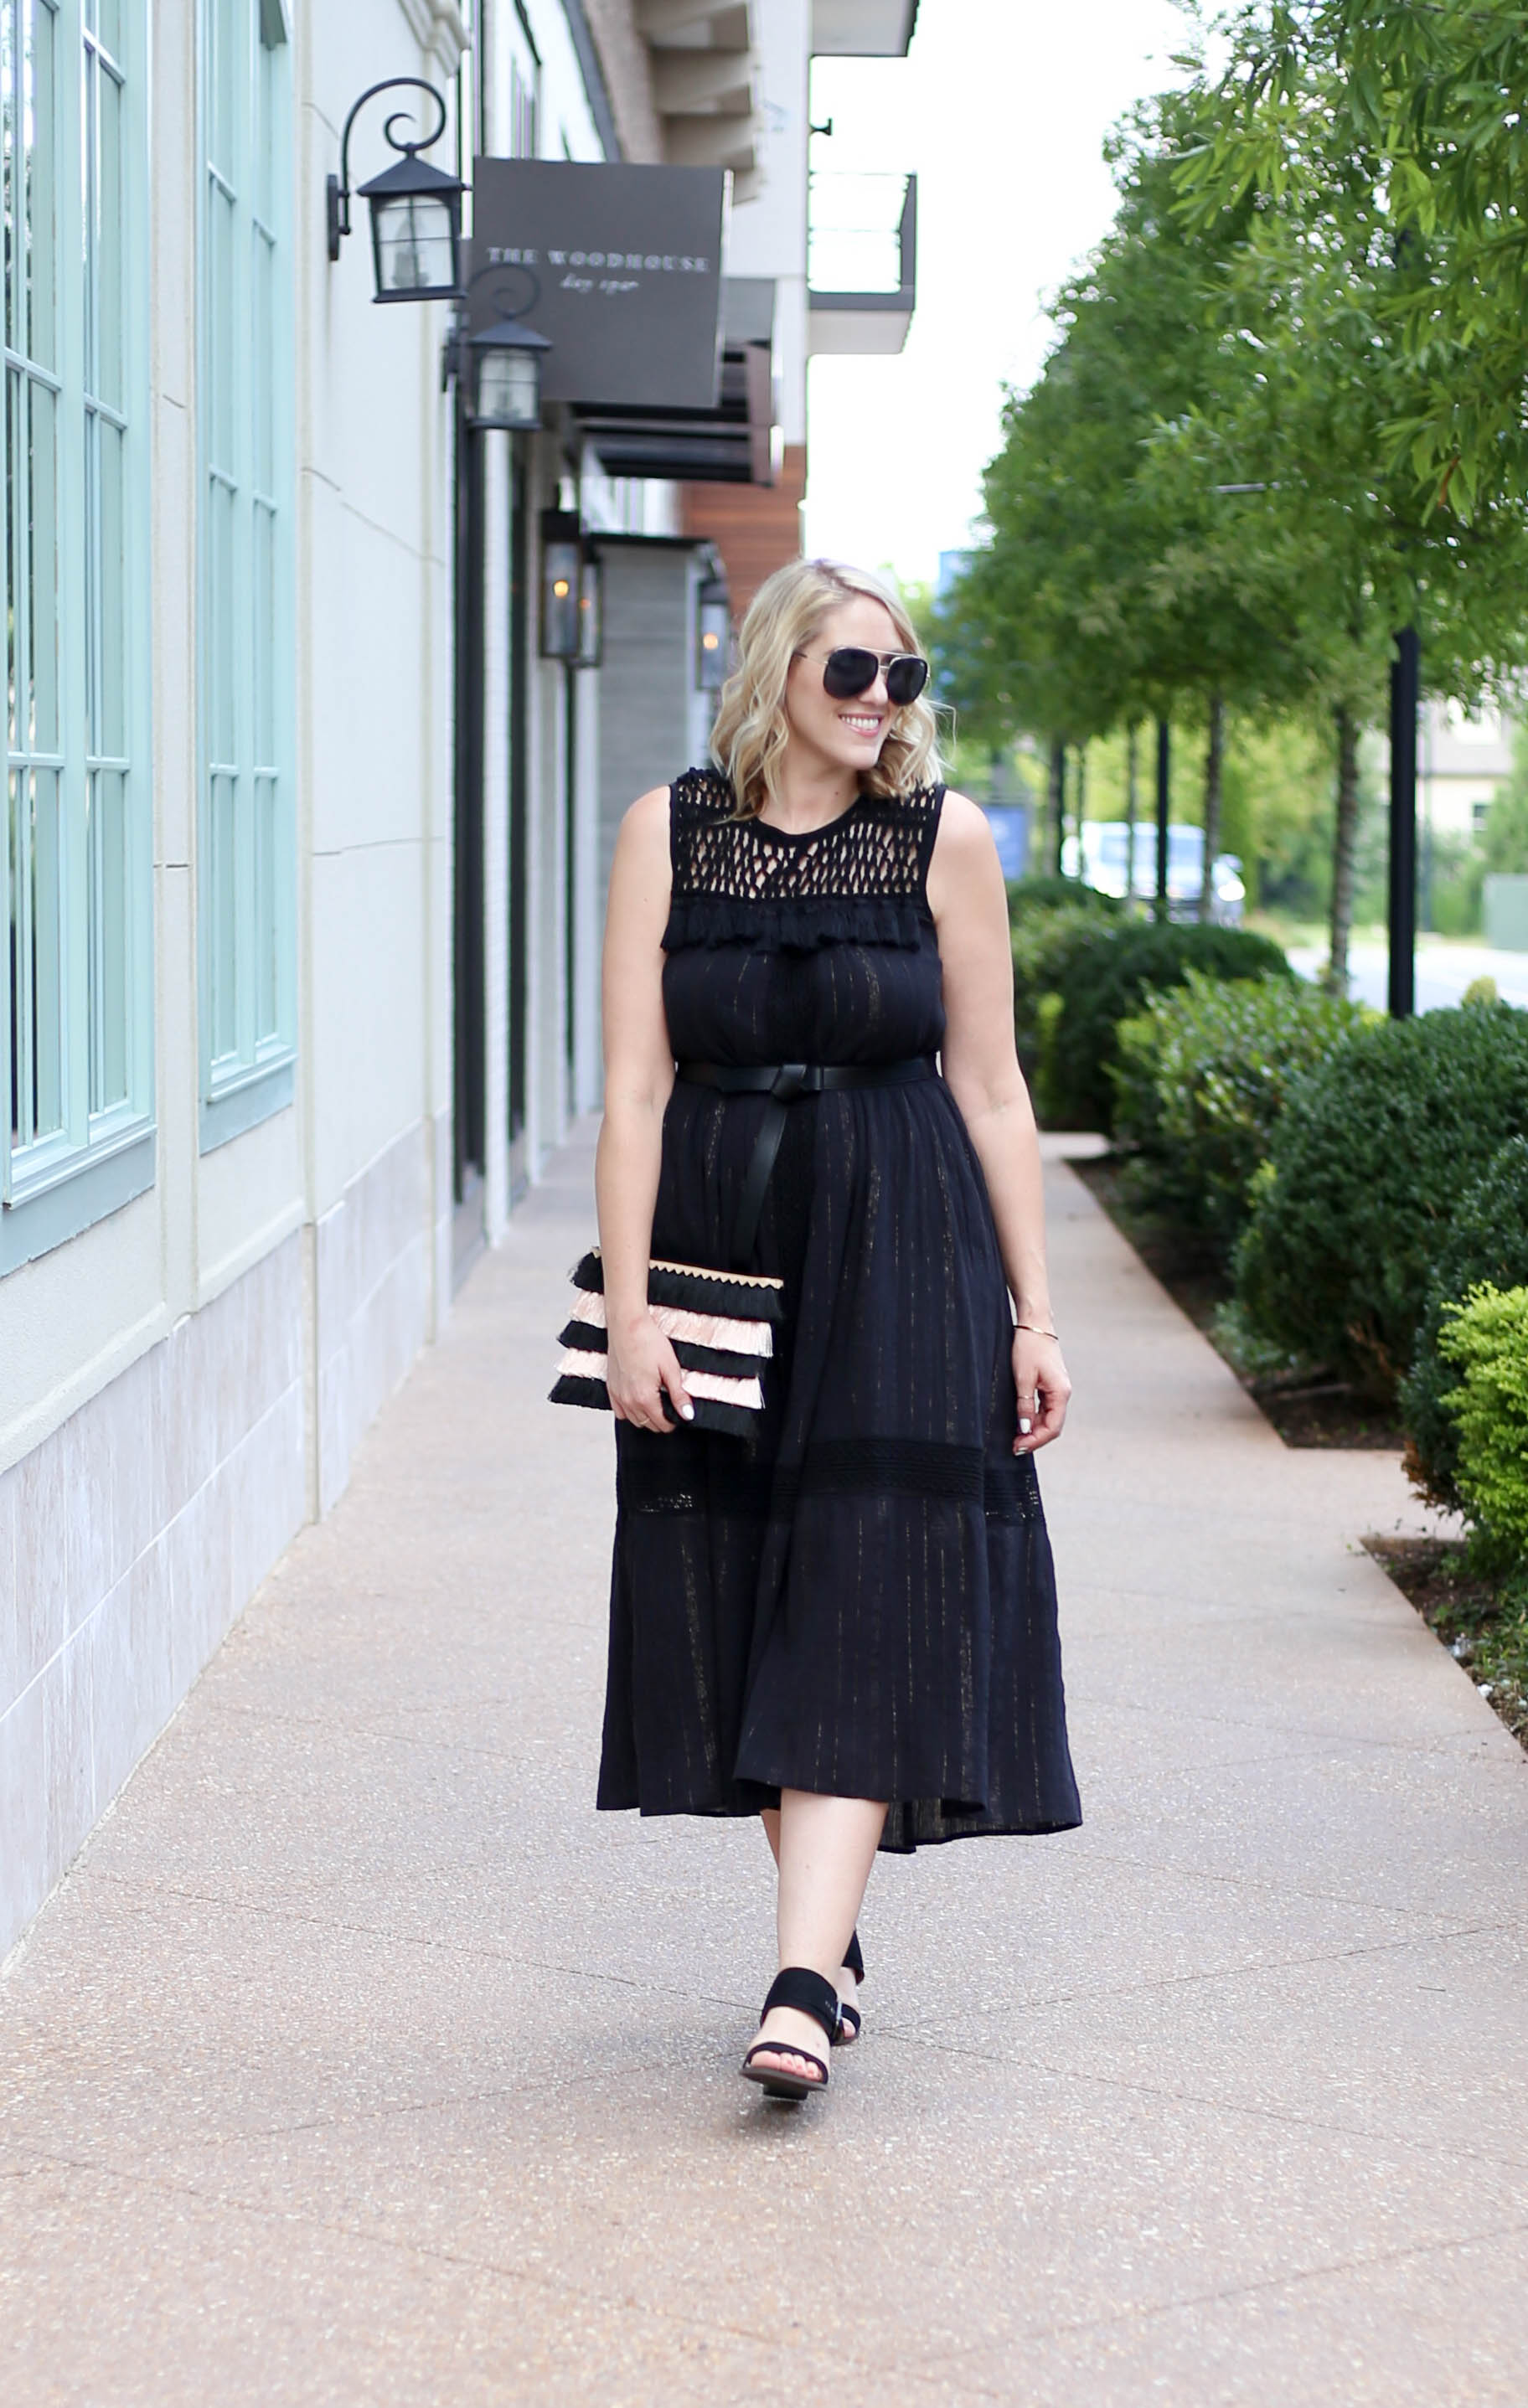 black boho dress midi dress #bohodress #bohooutfit #fashionblogger